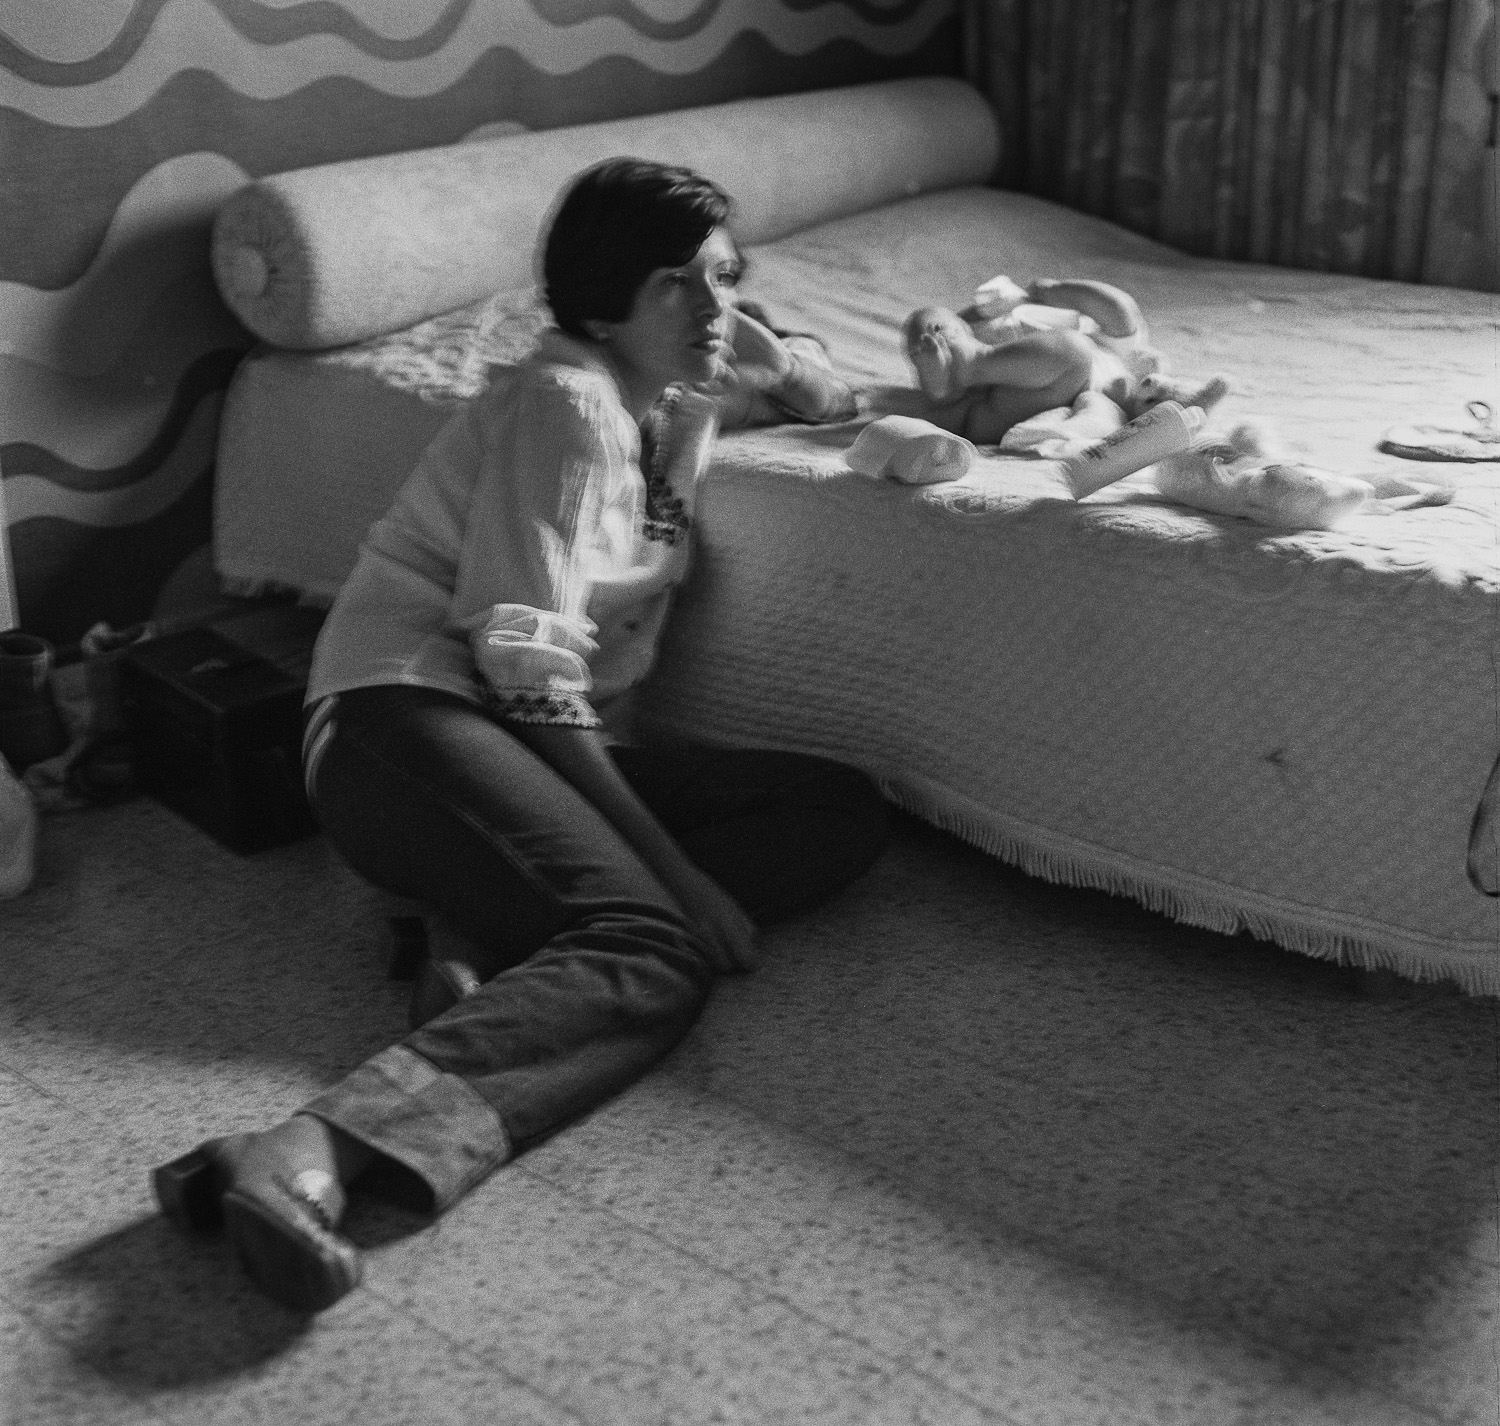 Fanny changing diapers, Golden Beach - 1979